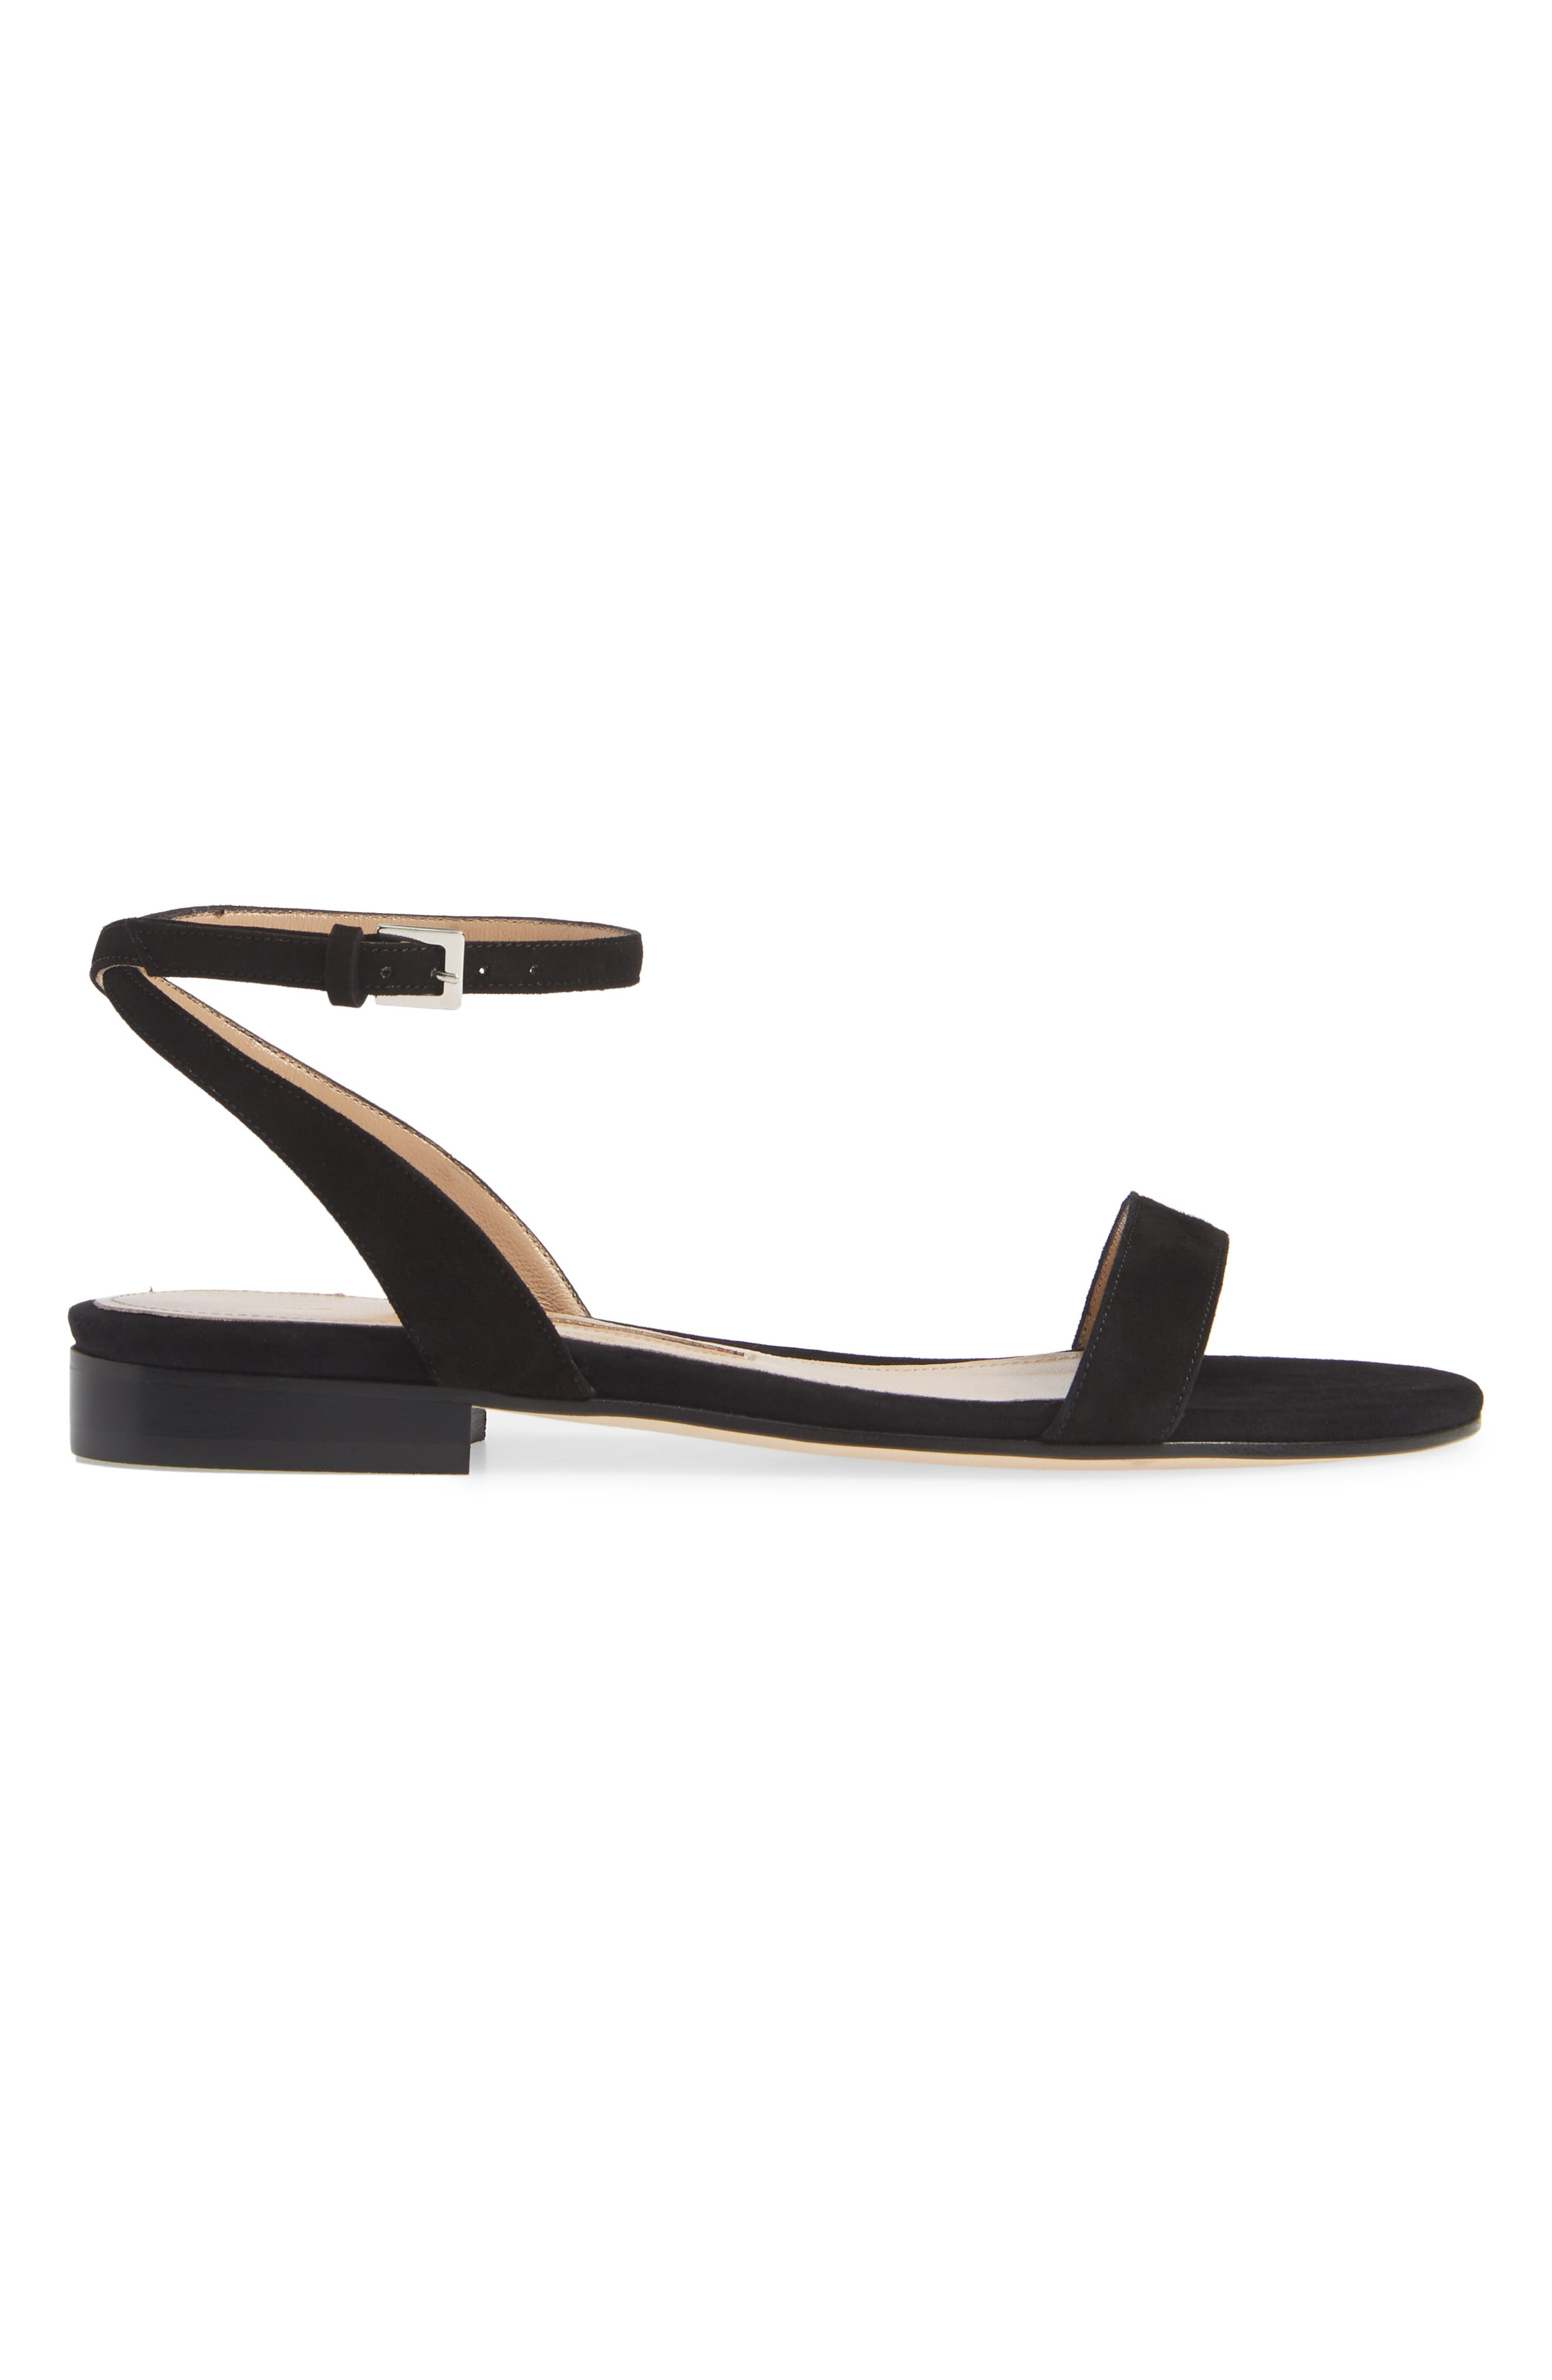 EMME PARSONS, One Ankle Strap Flat Sandal, Alternate thumbnail 3, color, BLACK